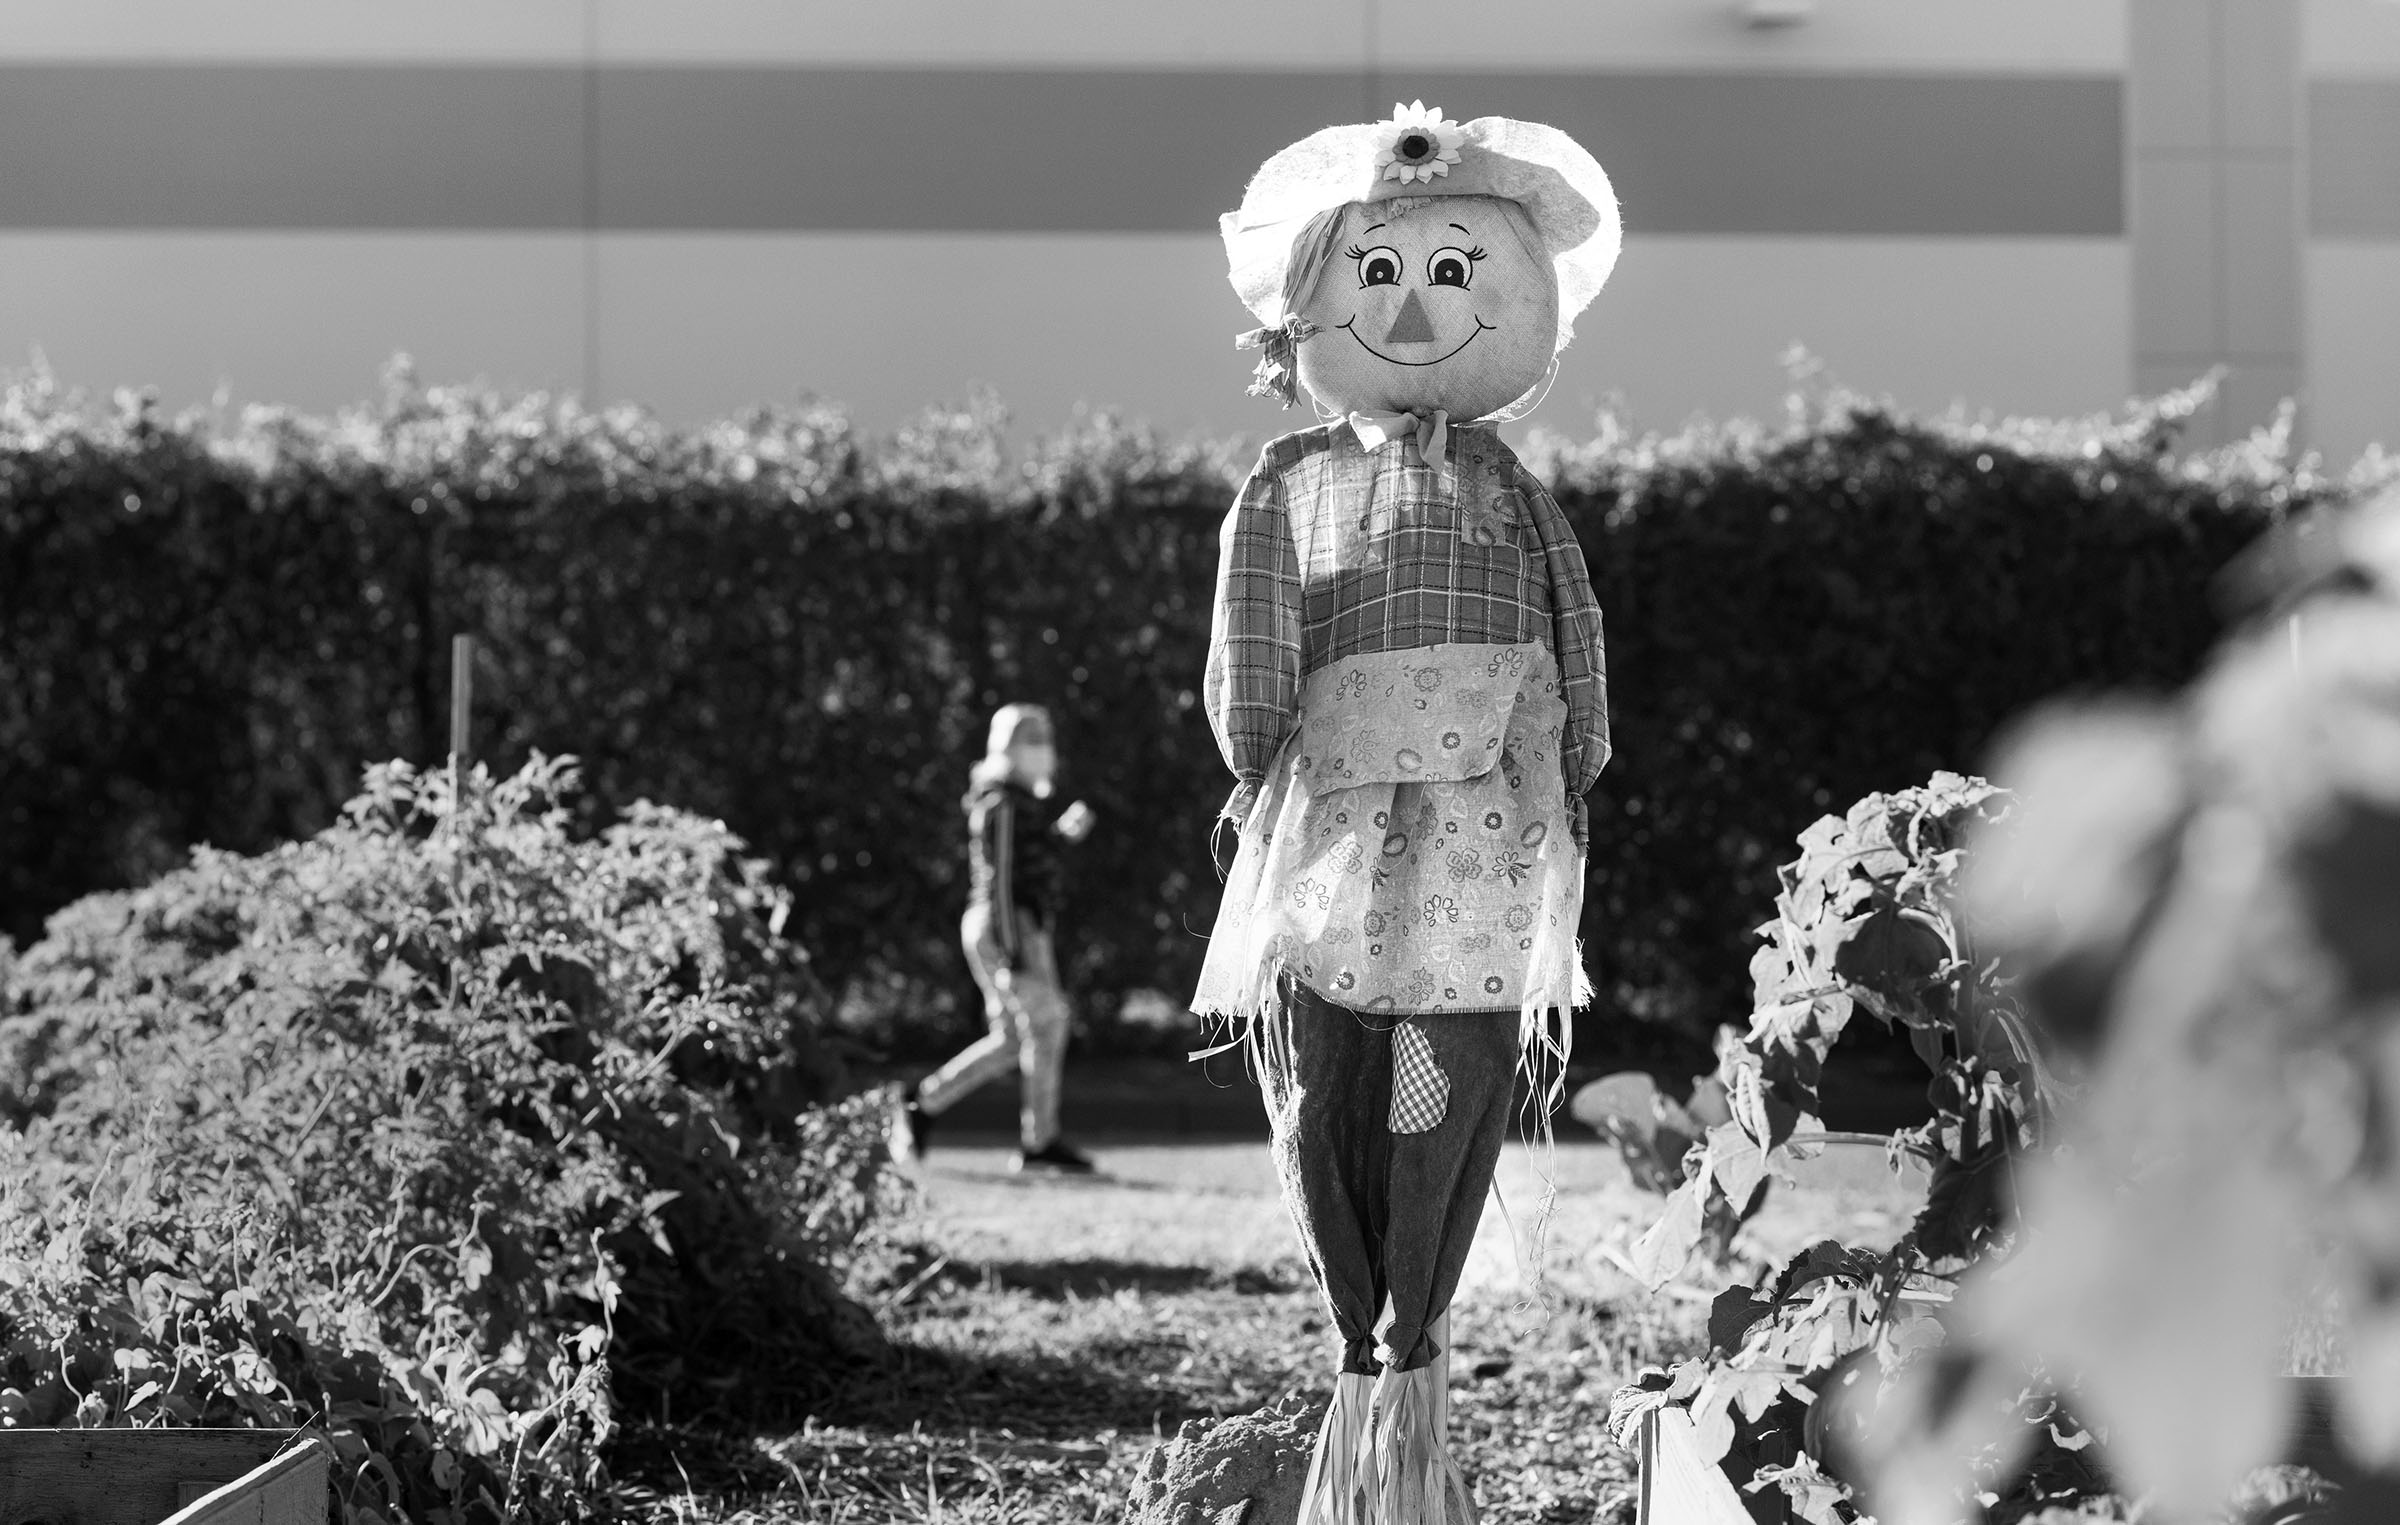 Community Garden participants decorated a scarecrow placed between plots used to keep birds away from their gardens.